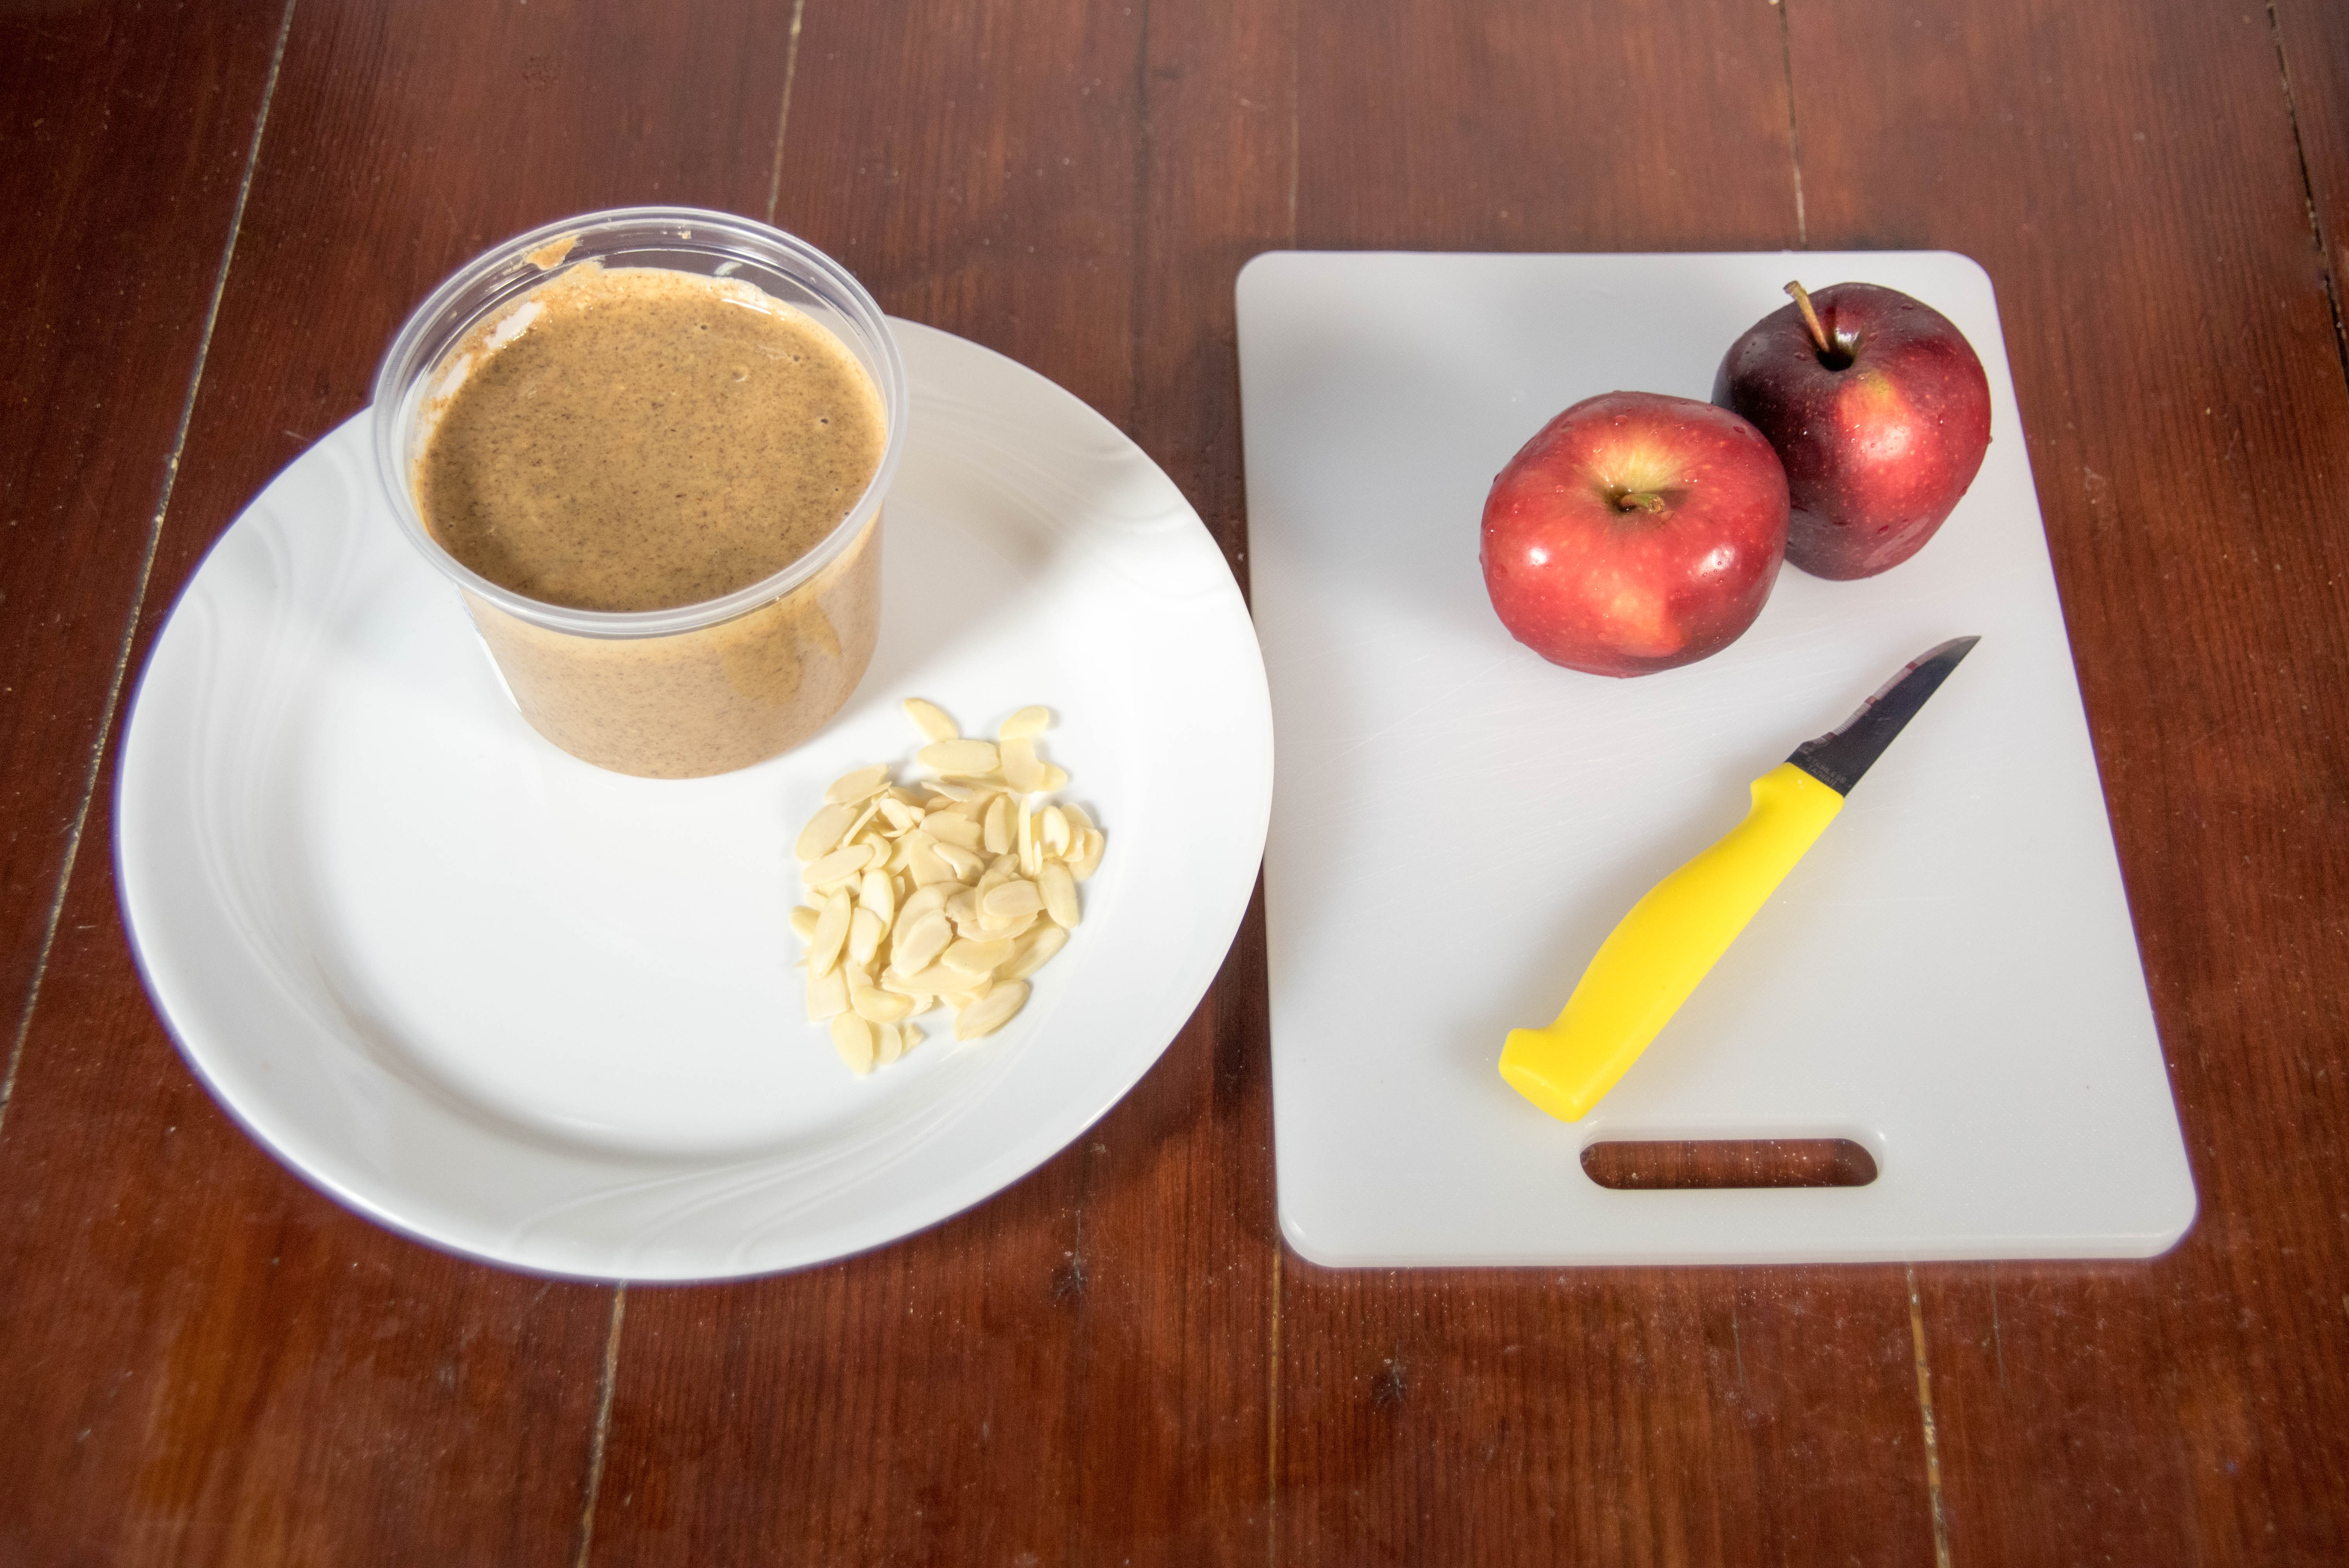 paleo apple bites ingredients